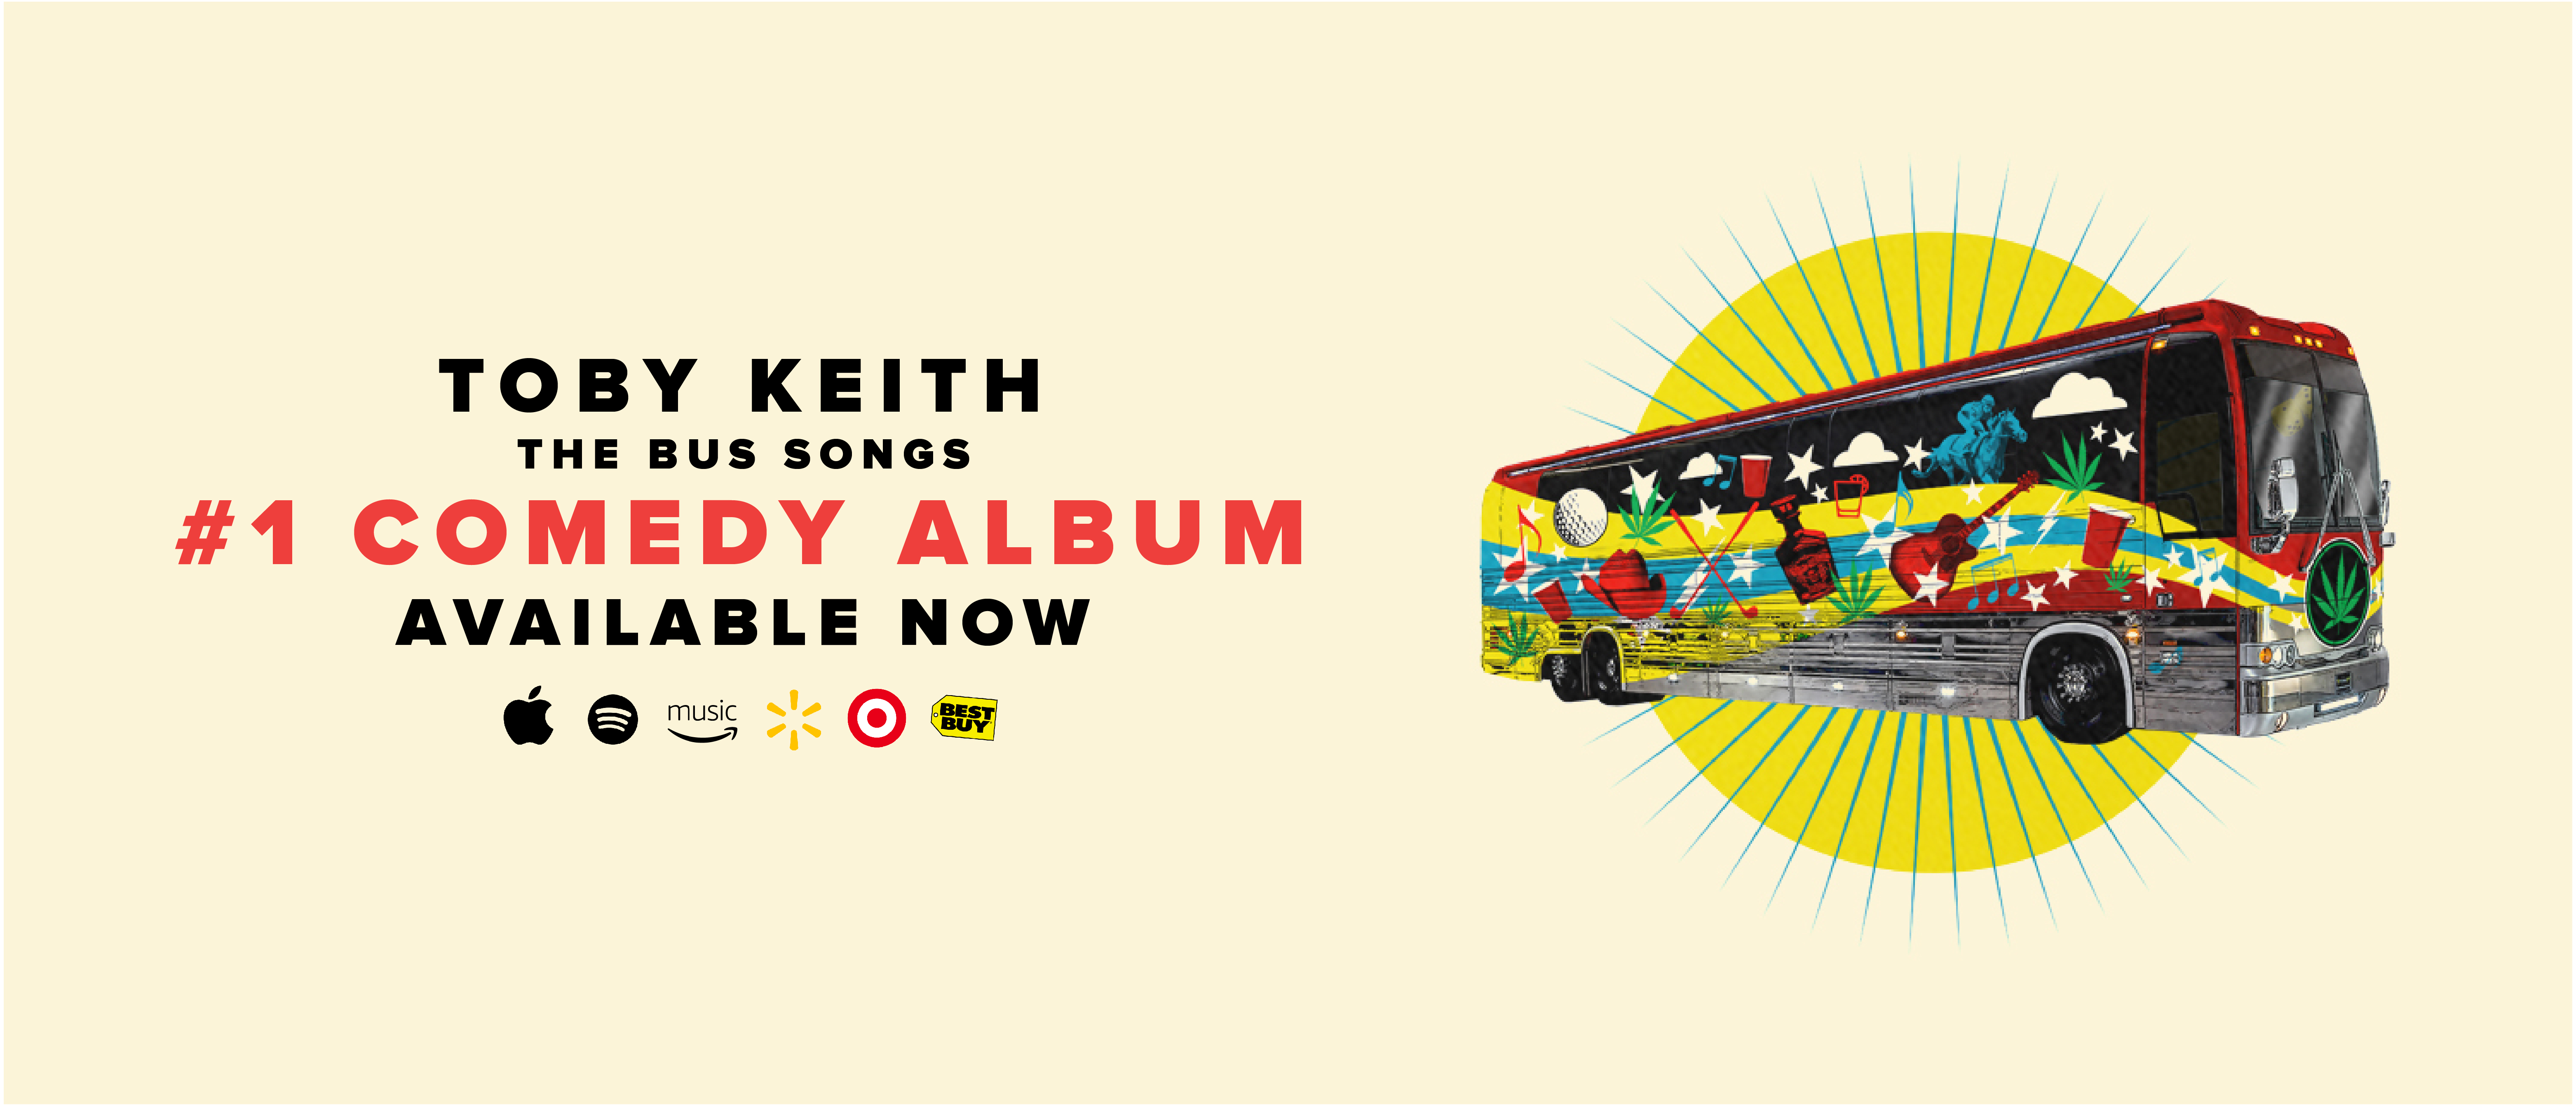 The Bus Songs Available Now